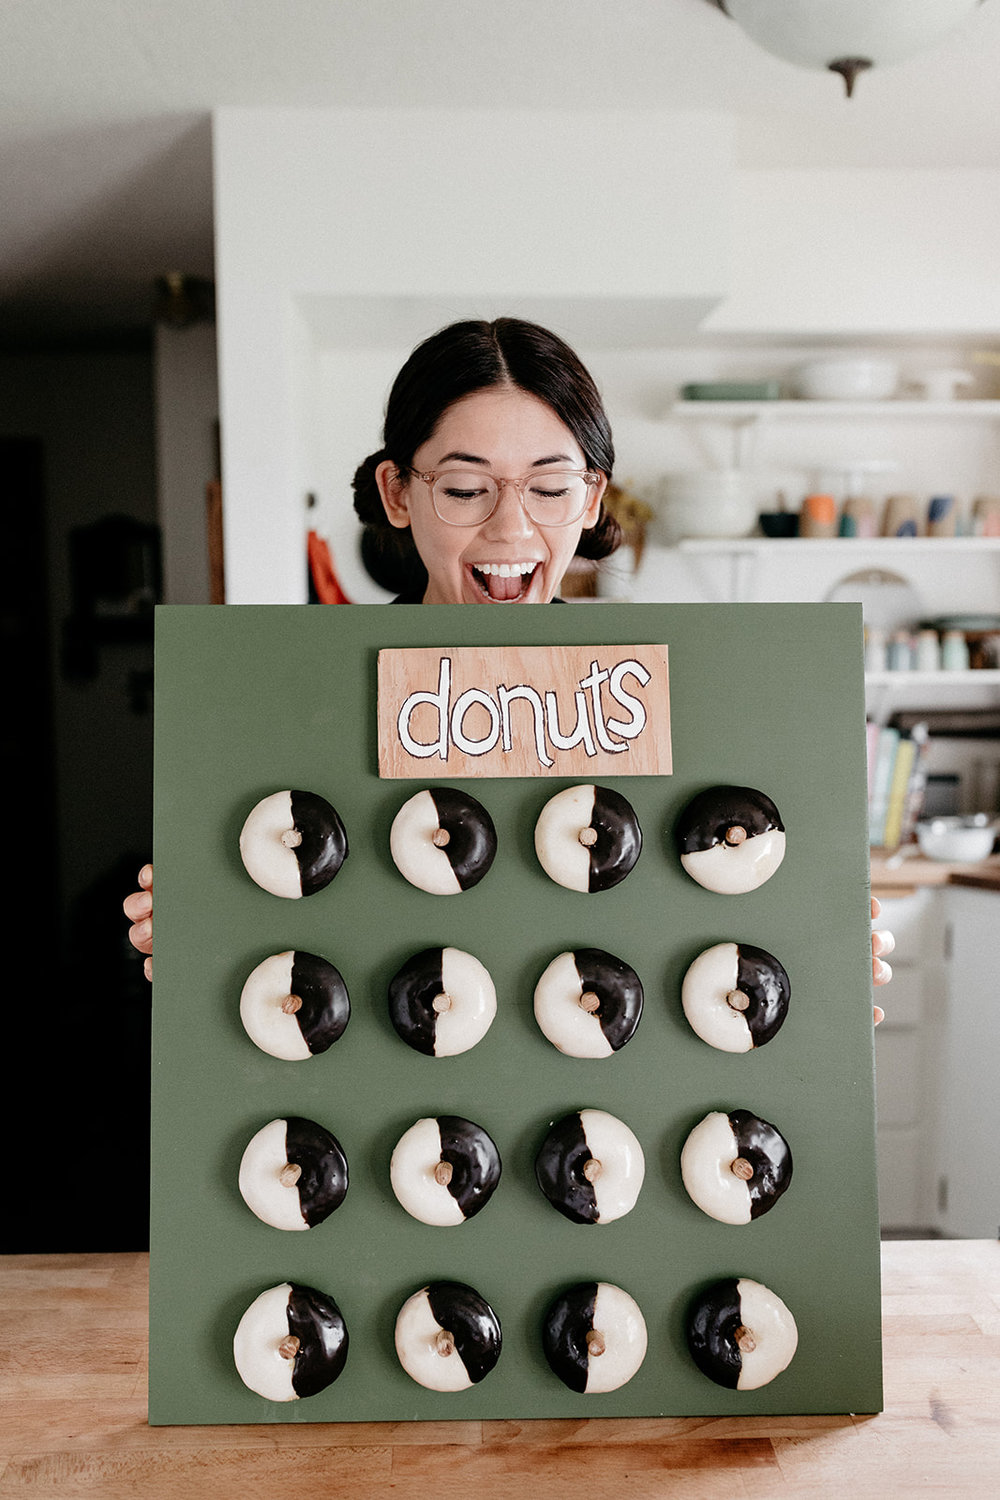 molly-yeh-intel-donuts34.jpg